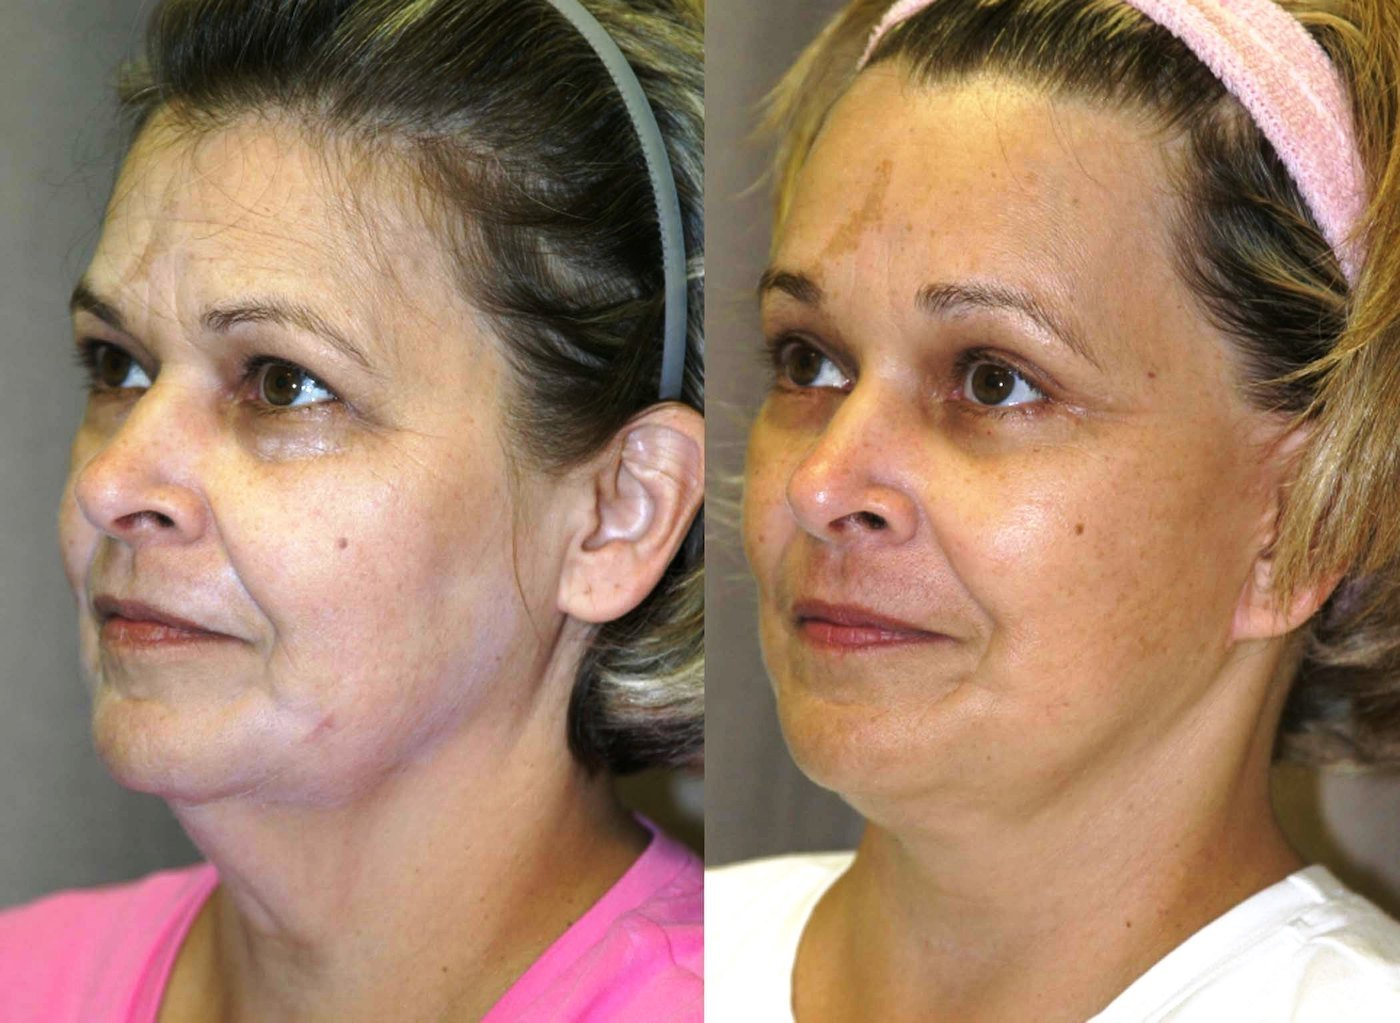 57 year-old, 9 month follow-up after facelift, lower external blepharoplasty with lateral canthoplasty, endoscopic browlift with endotine fixation,oblique view